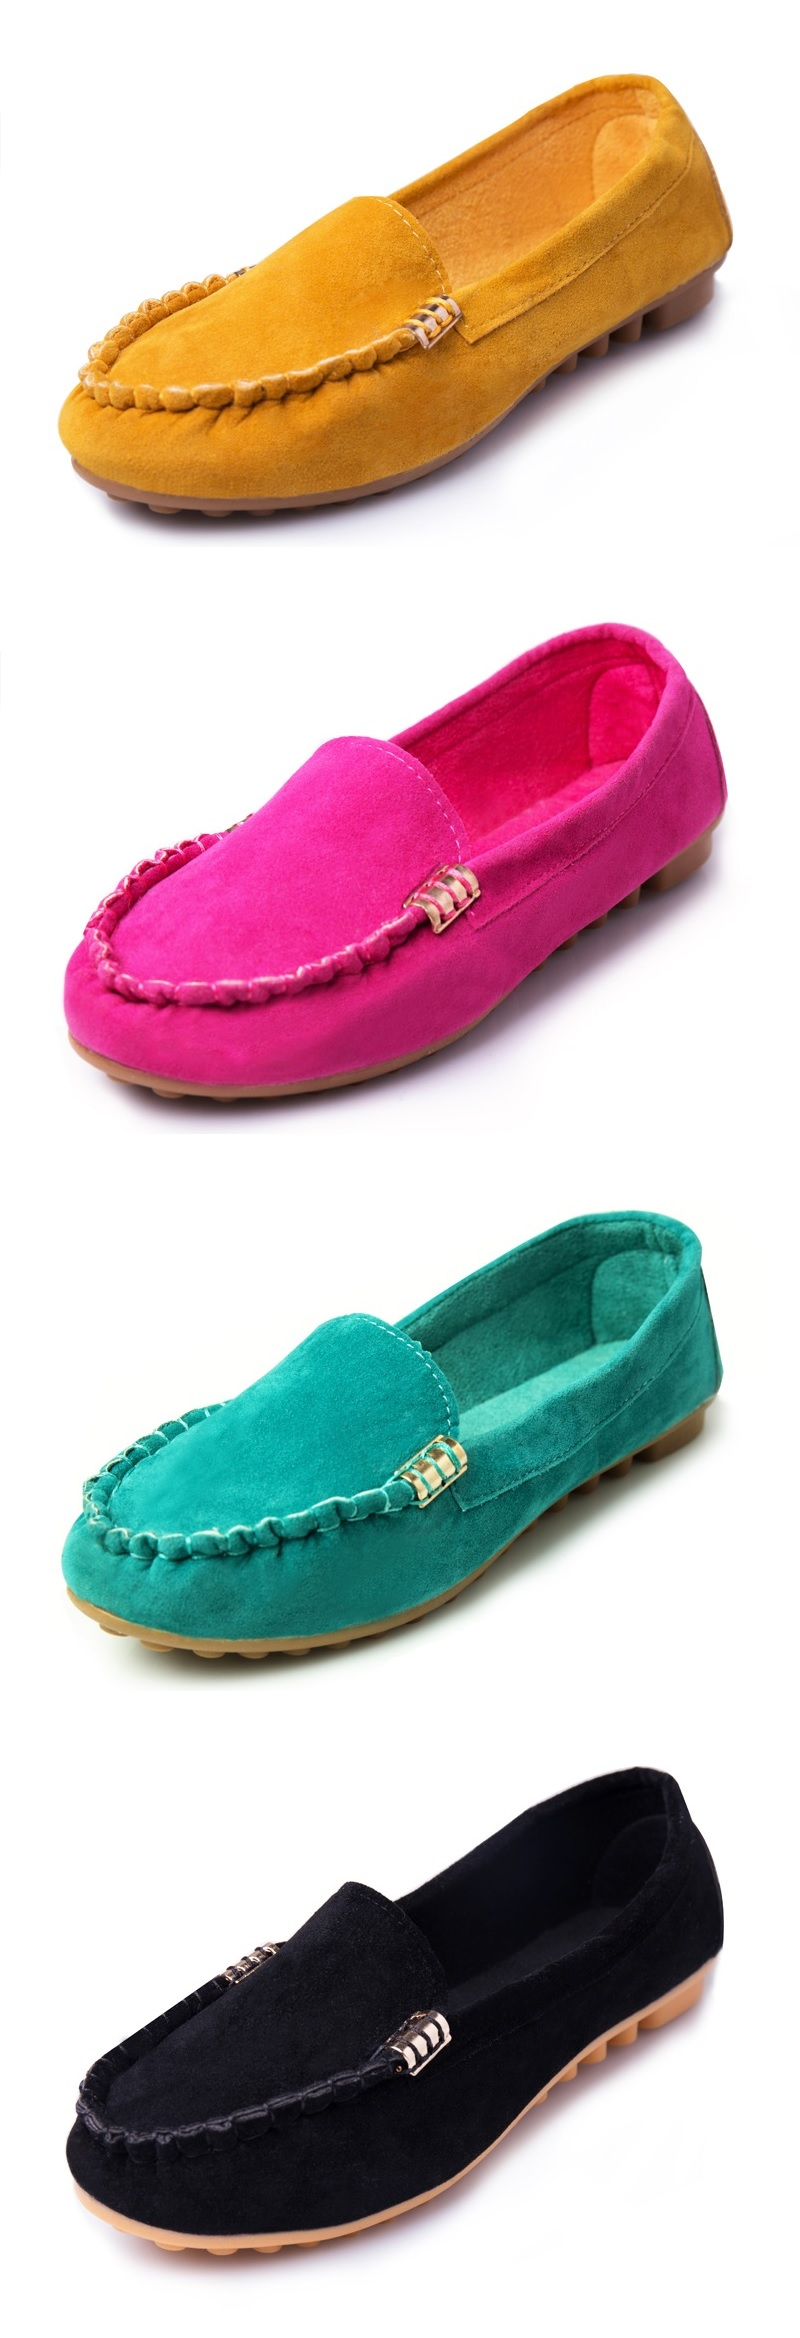 Summer Women Flats Casual Shoes Comfortable Loafers